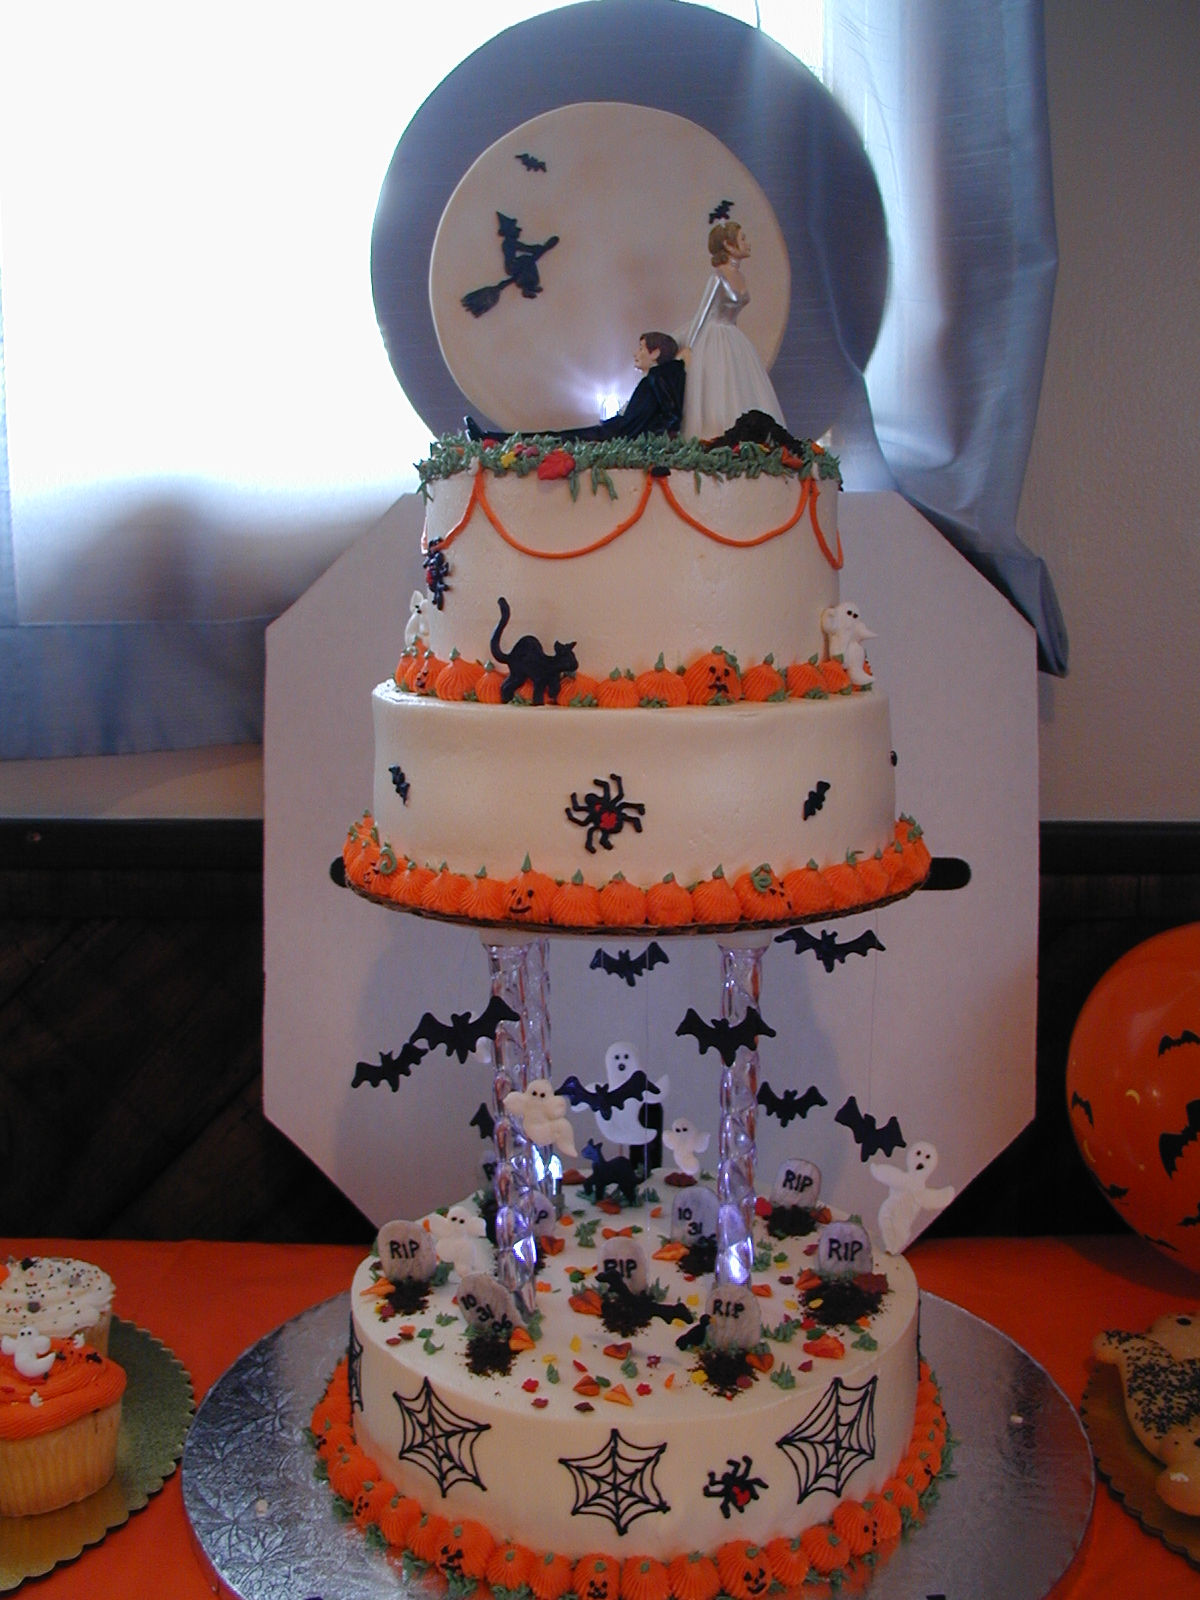 Cake Ideas For Halloween : Halloween Wedding Cake ~ Cake Idea Red Velvet Wedding ...